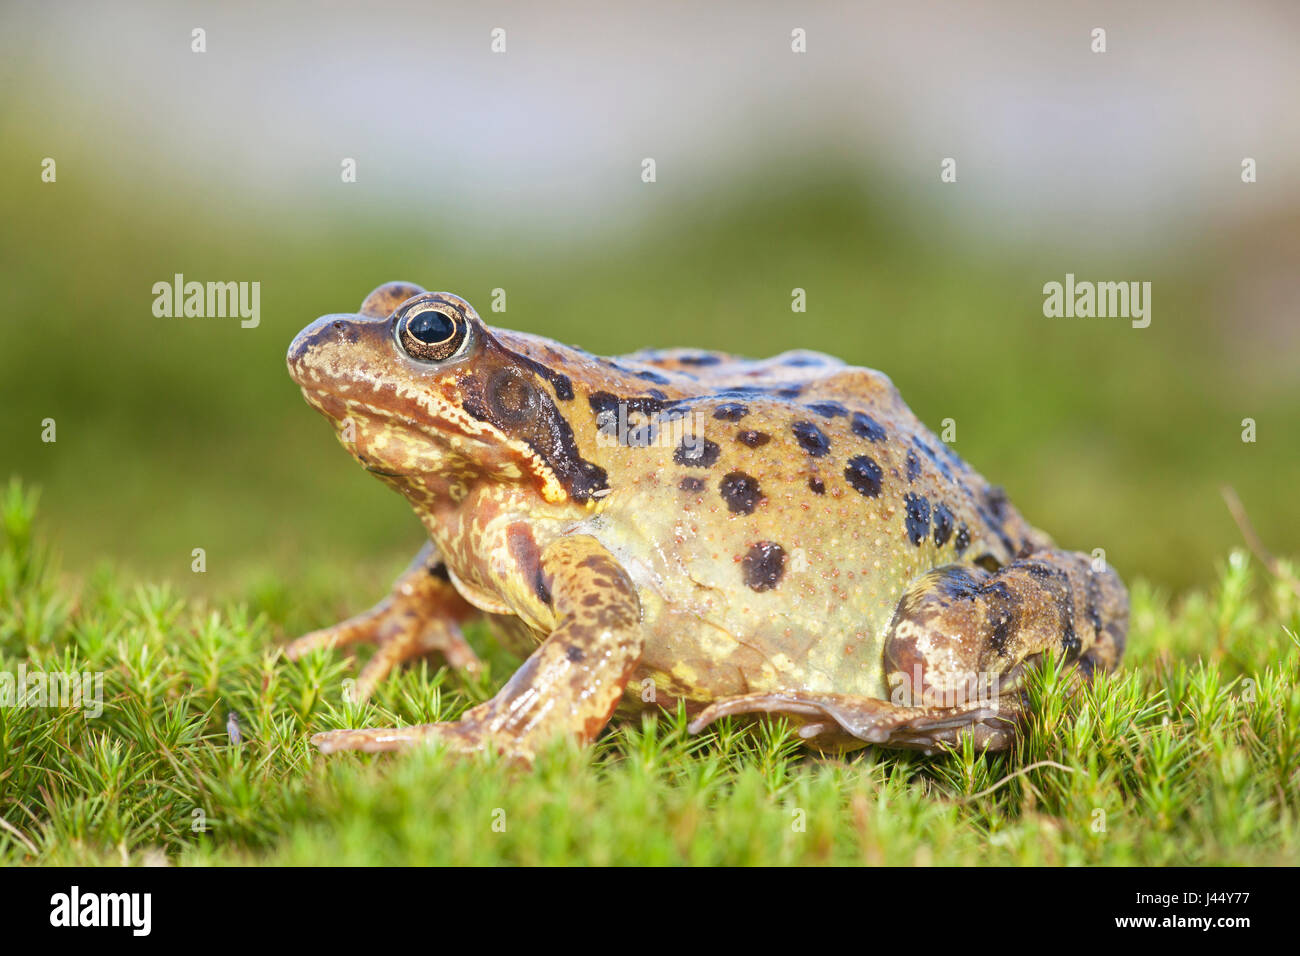 photo of a common frog on moss - Stock Image